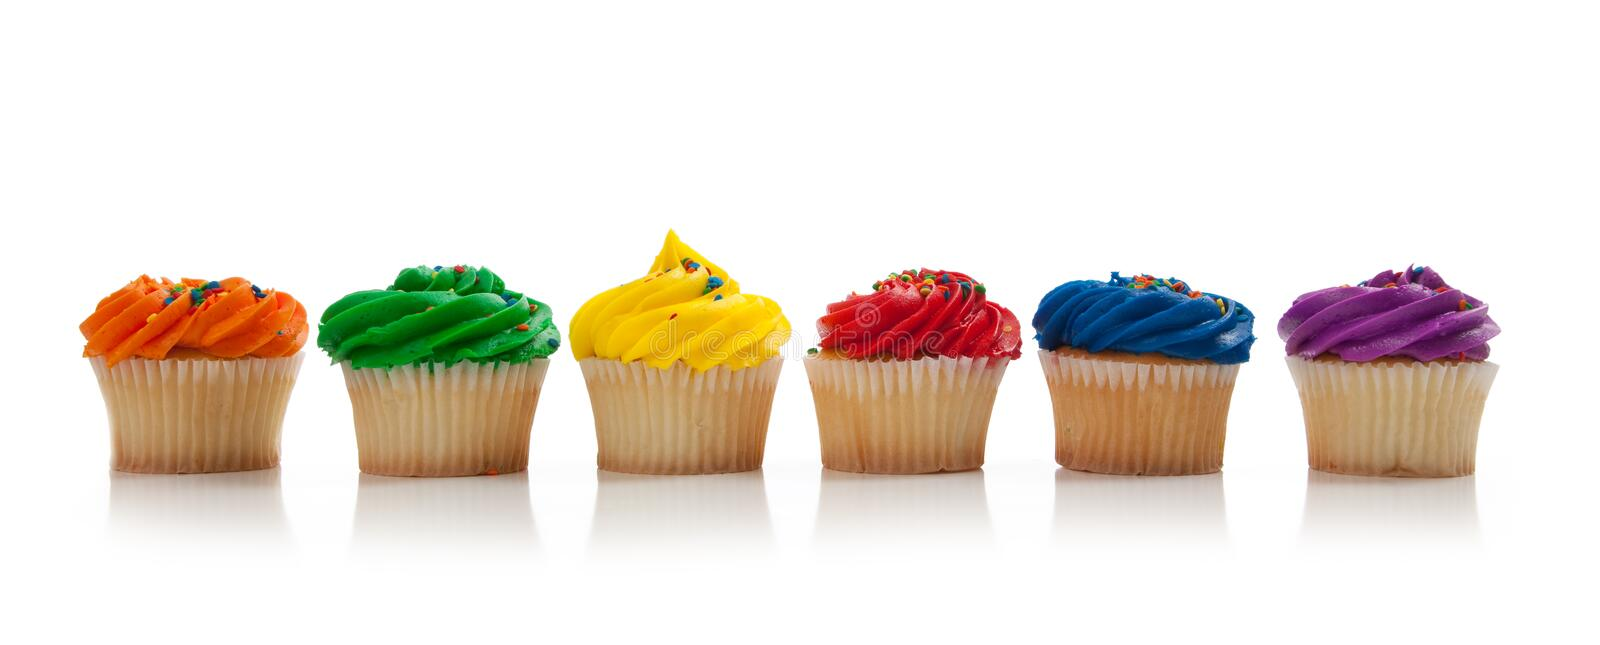 Assorted colored Cupcakes with sprinkles on white royalty free stock photos